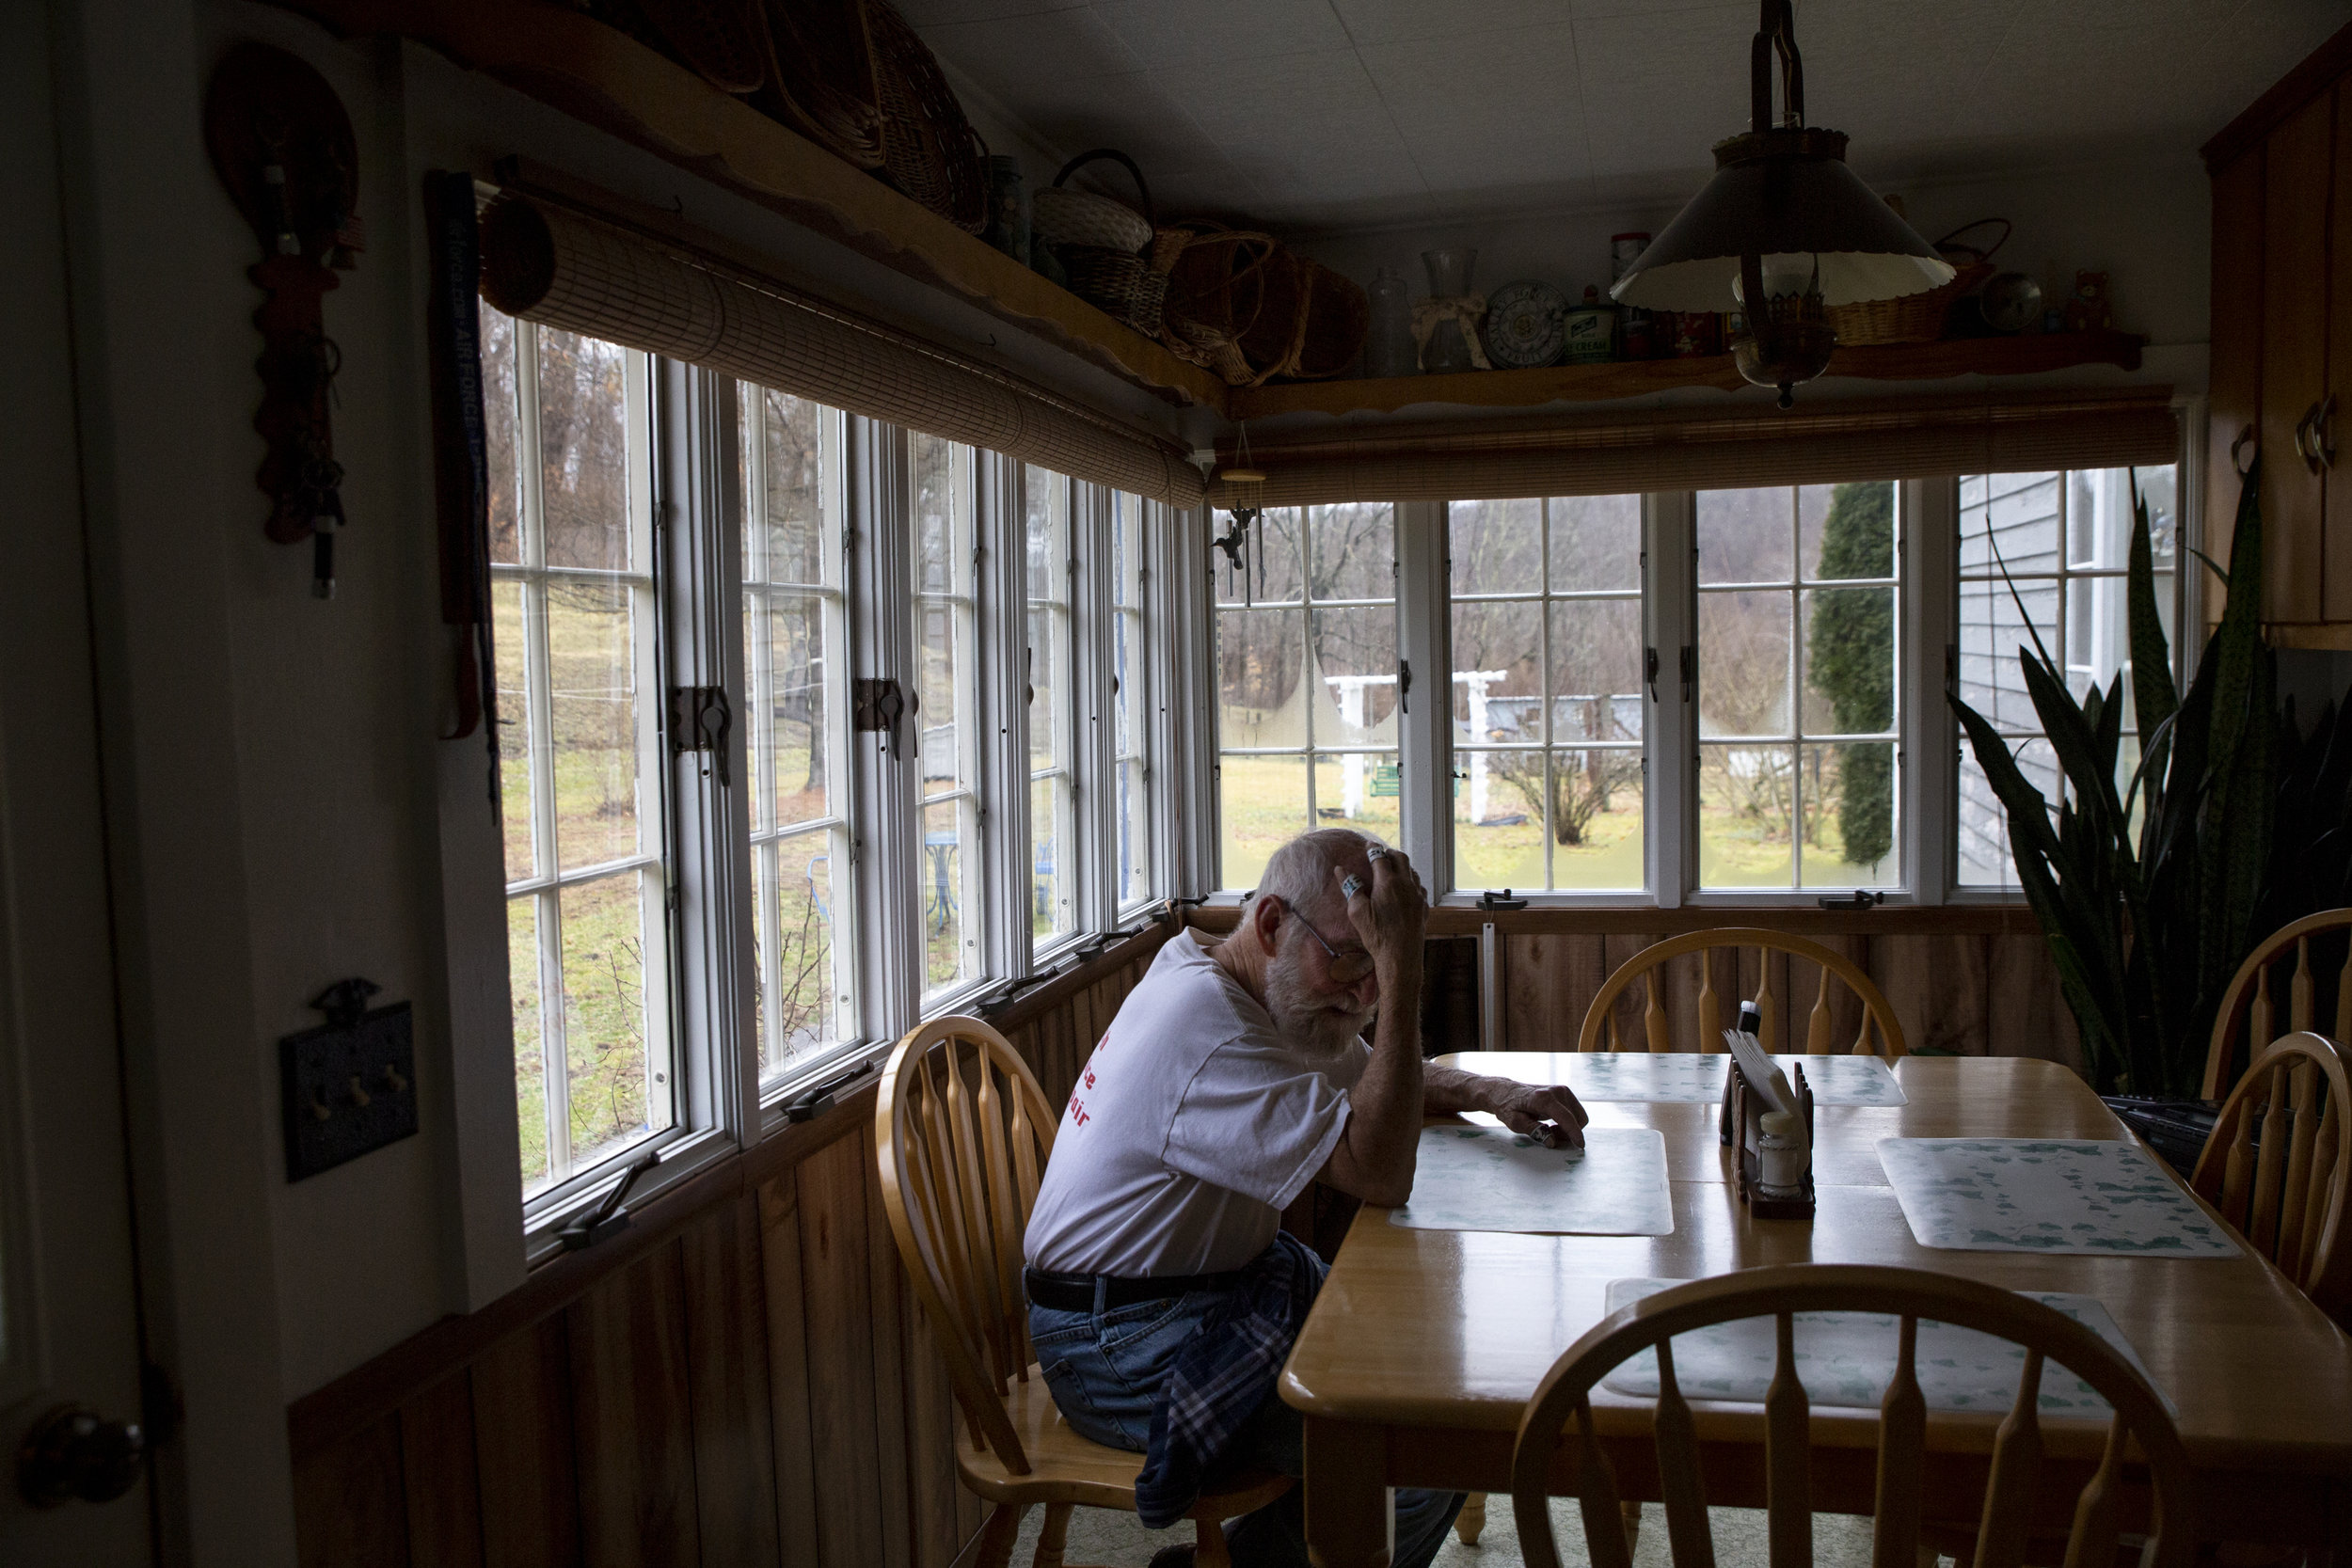 """Bobby Spaulding, 82, rests in his kitchen after feeding his 15 cattle. Although he is battling cancer for a second time, Spaulding continues to raise cattle with his wife in order to afford their home. While he would like to sell the farm, his wife JoAnn says she can't leave because """"it's just home."""""""